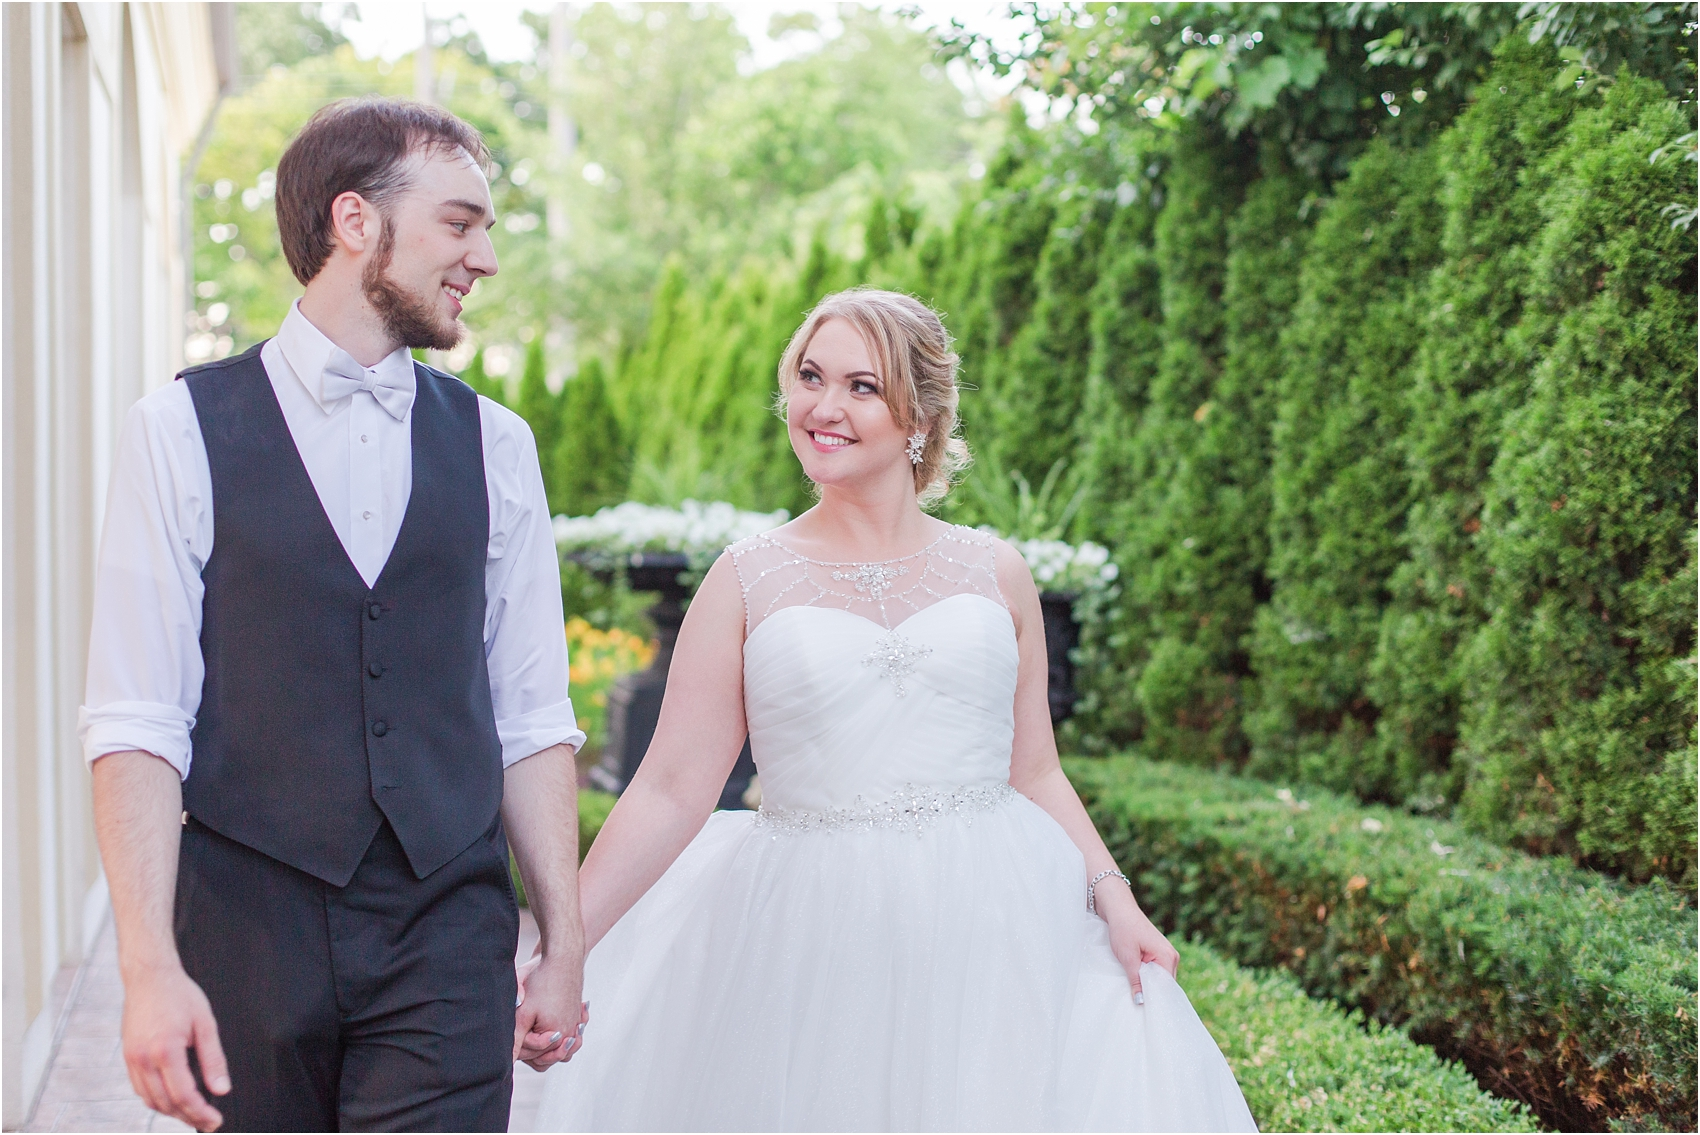 lord-of-the-rings-inspired-wedding-photos-at-crystal-gardens-in-howell-mi-by-courtney-carolyn-photography_0102.jpg